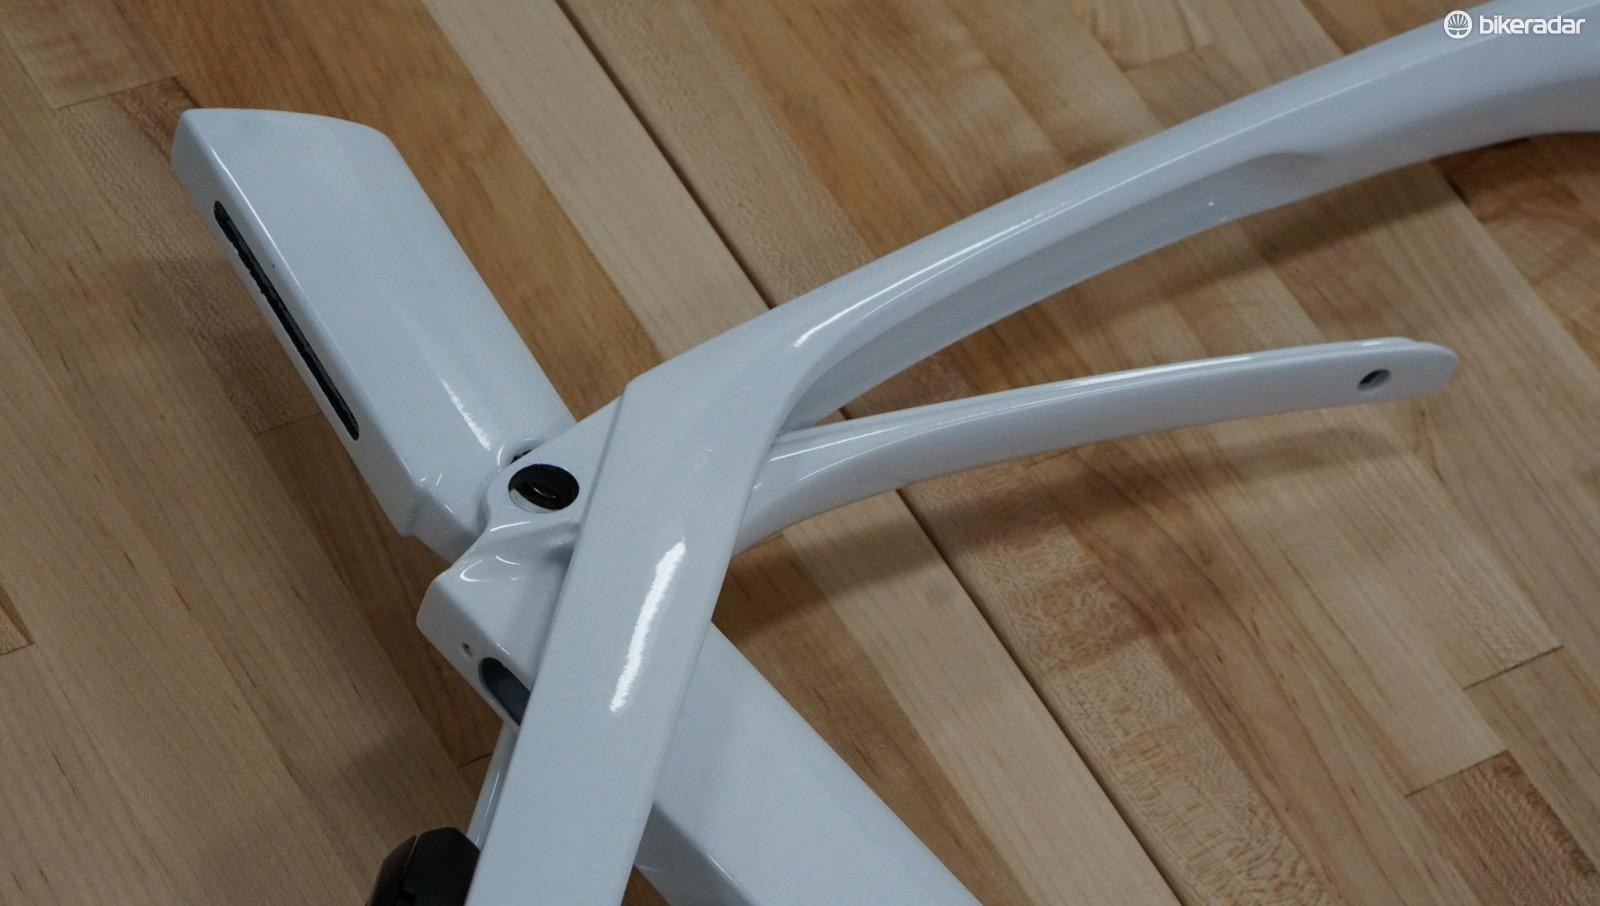 The primary deflection comes from the extension flexing upwards towards the actual top tube. The slider adjusts compliance by increasing or decreasing the amount of empty space the tube can flex into